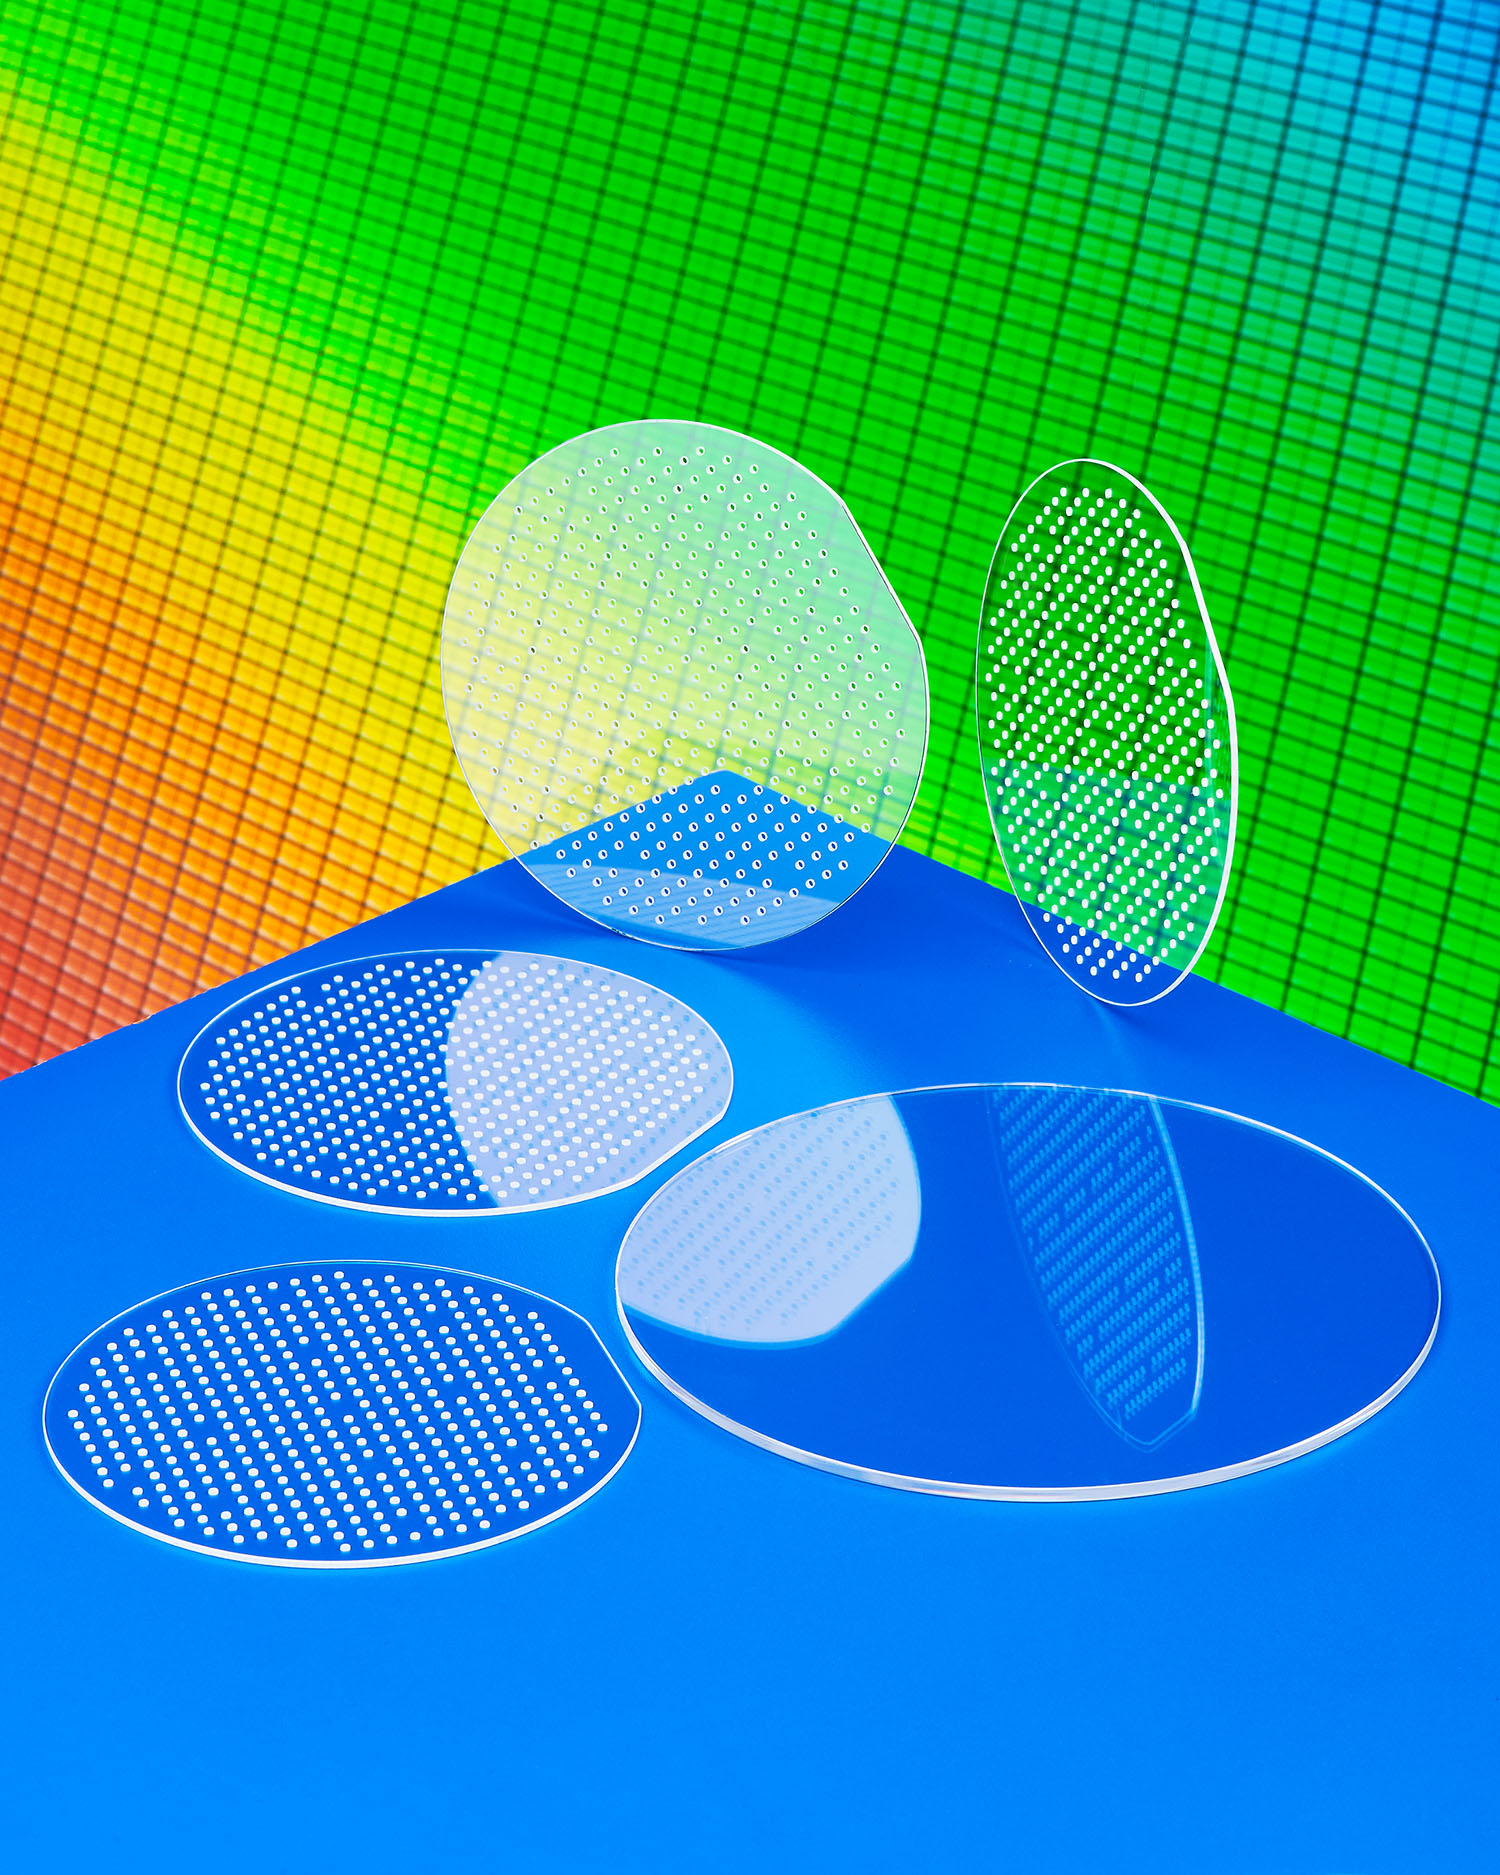 Custom fabricated semiconductor wafer carriers